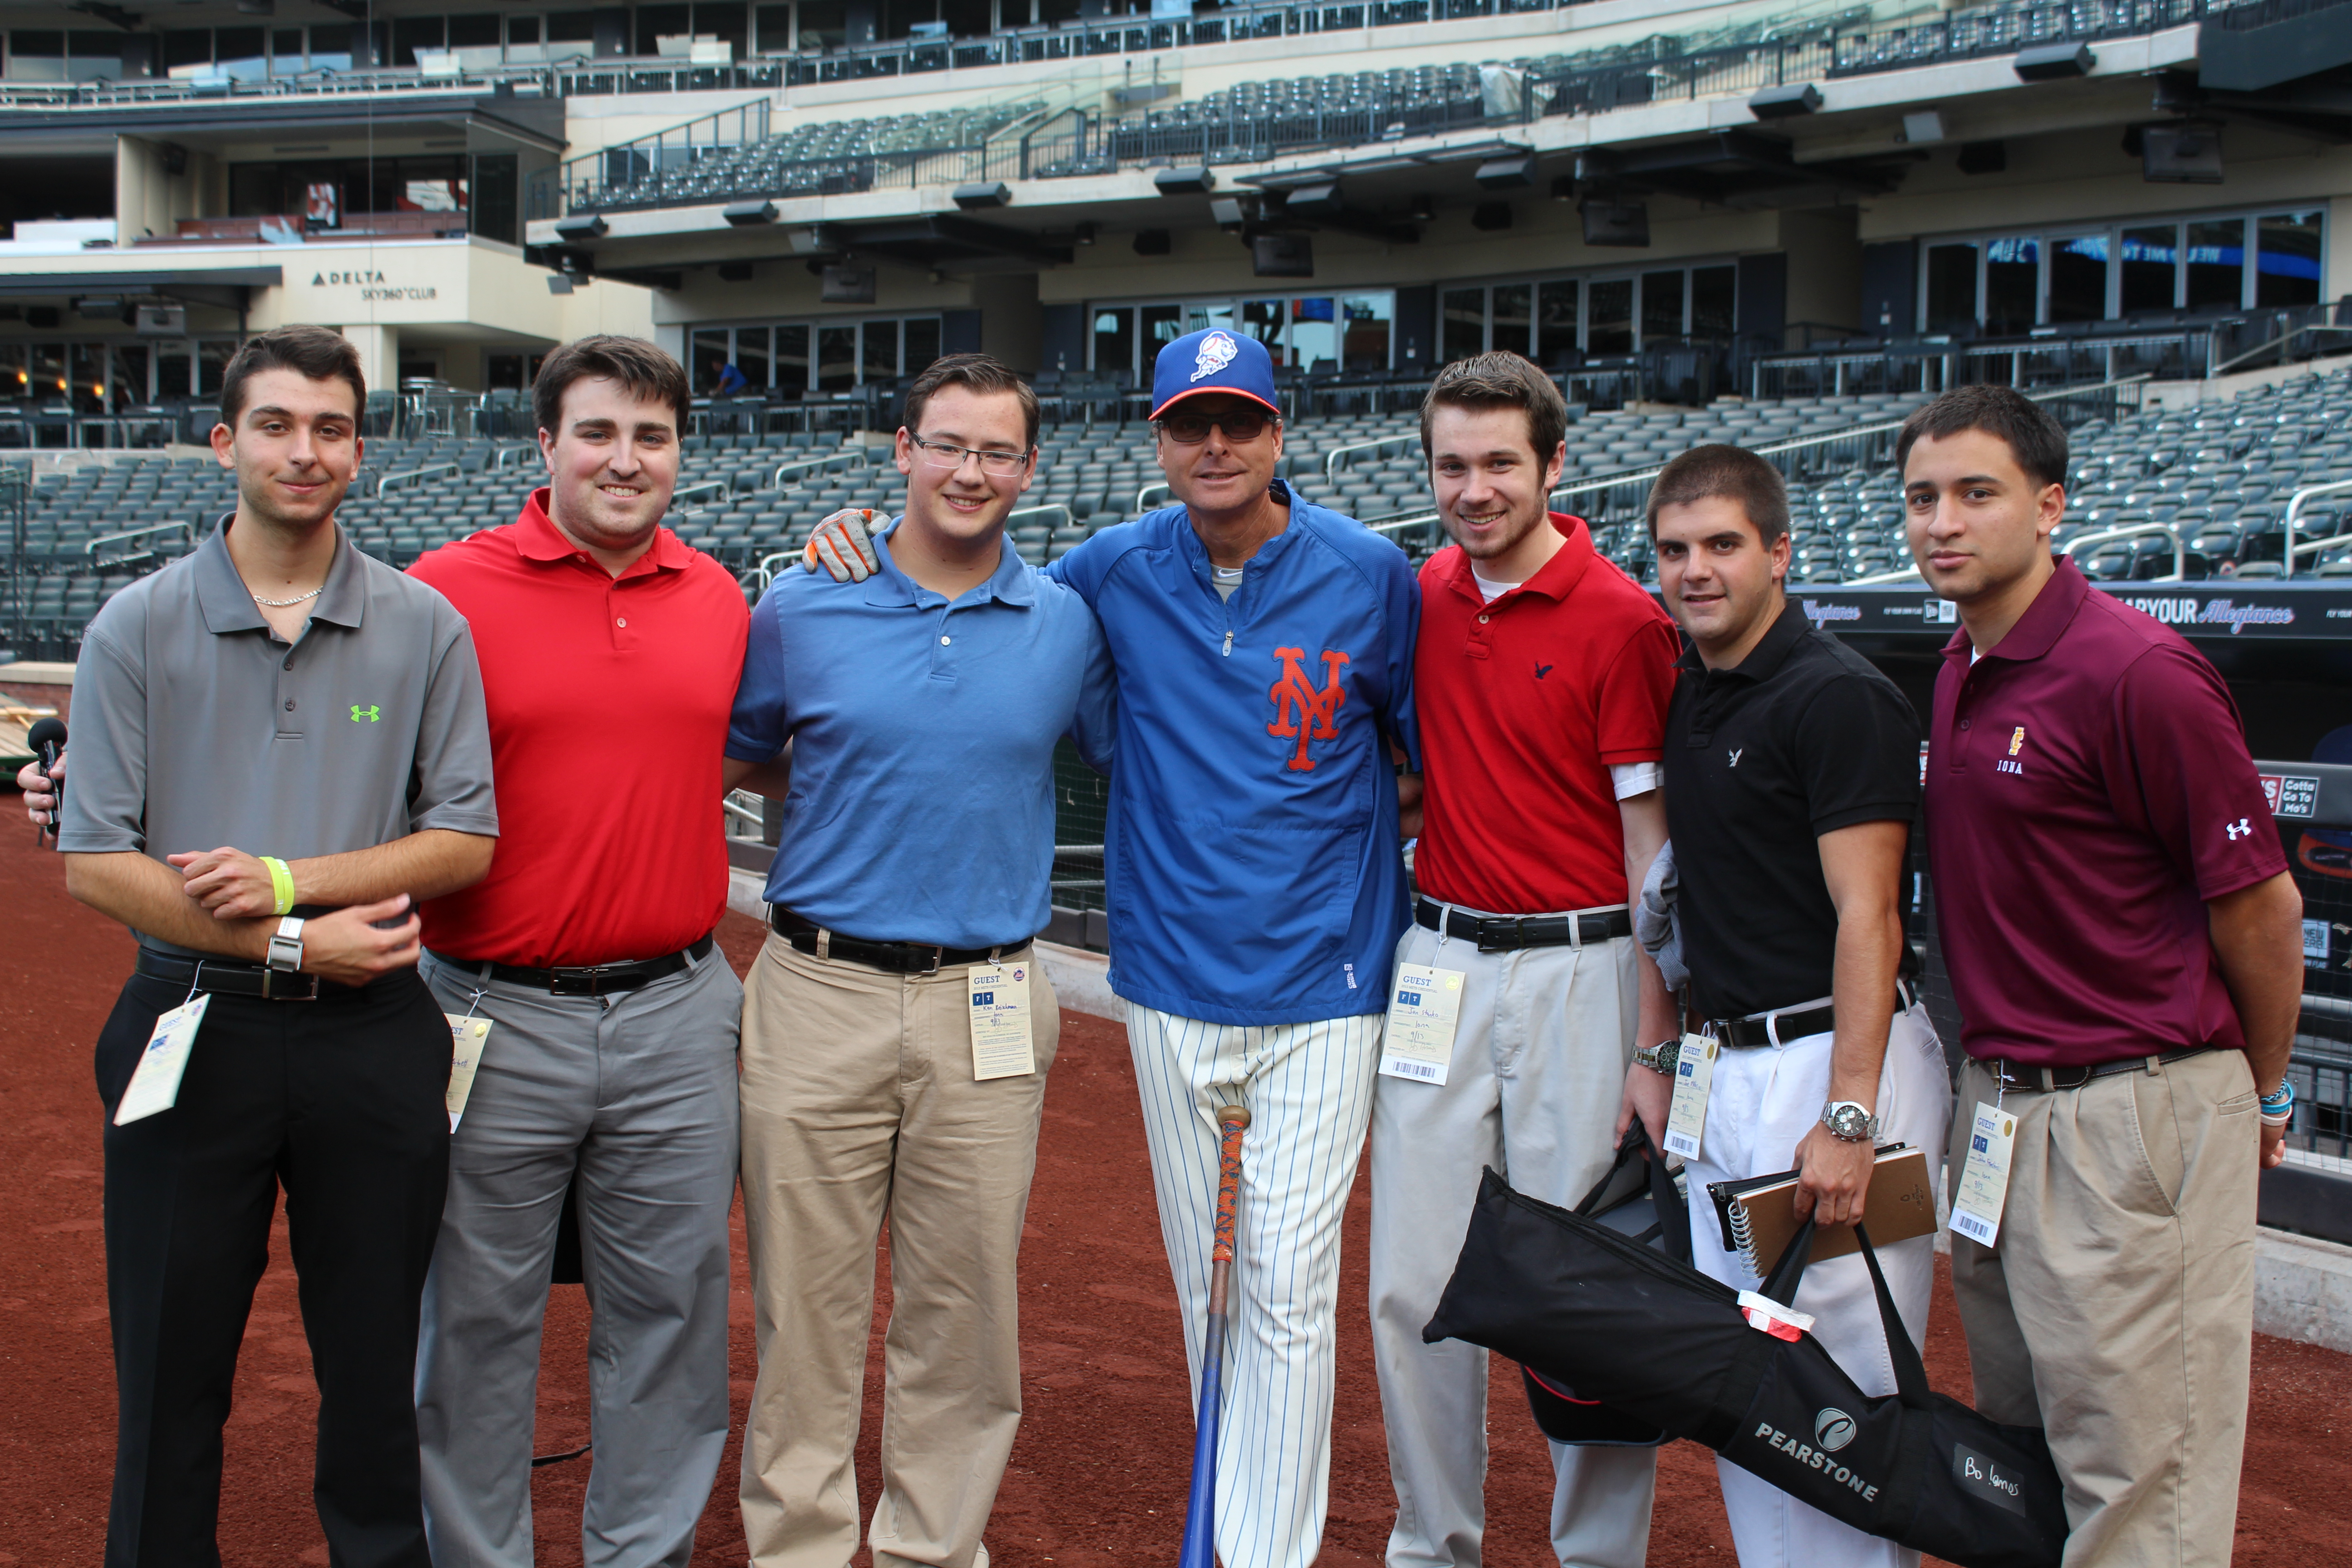 Broadcasting Bunch with Tim Teufel